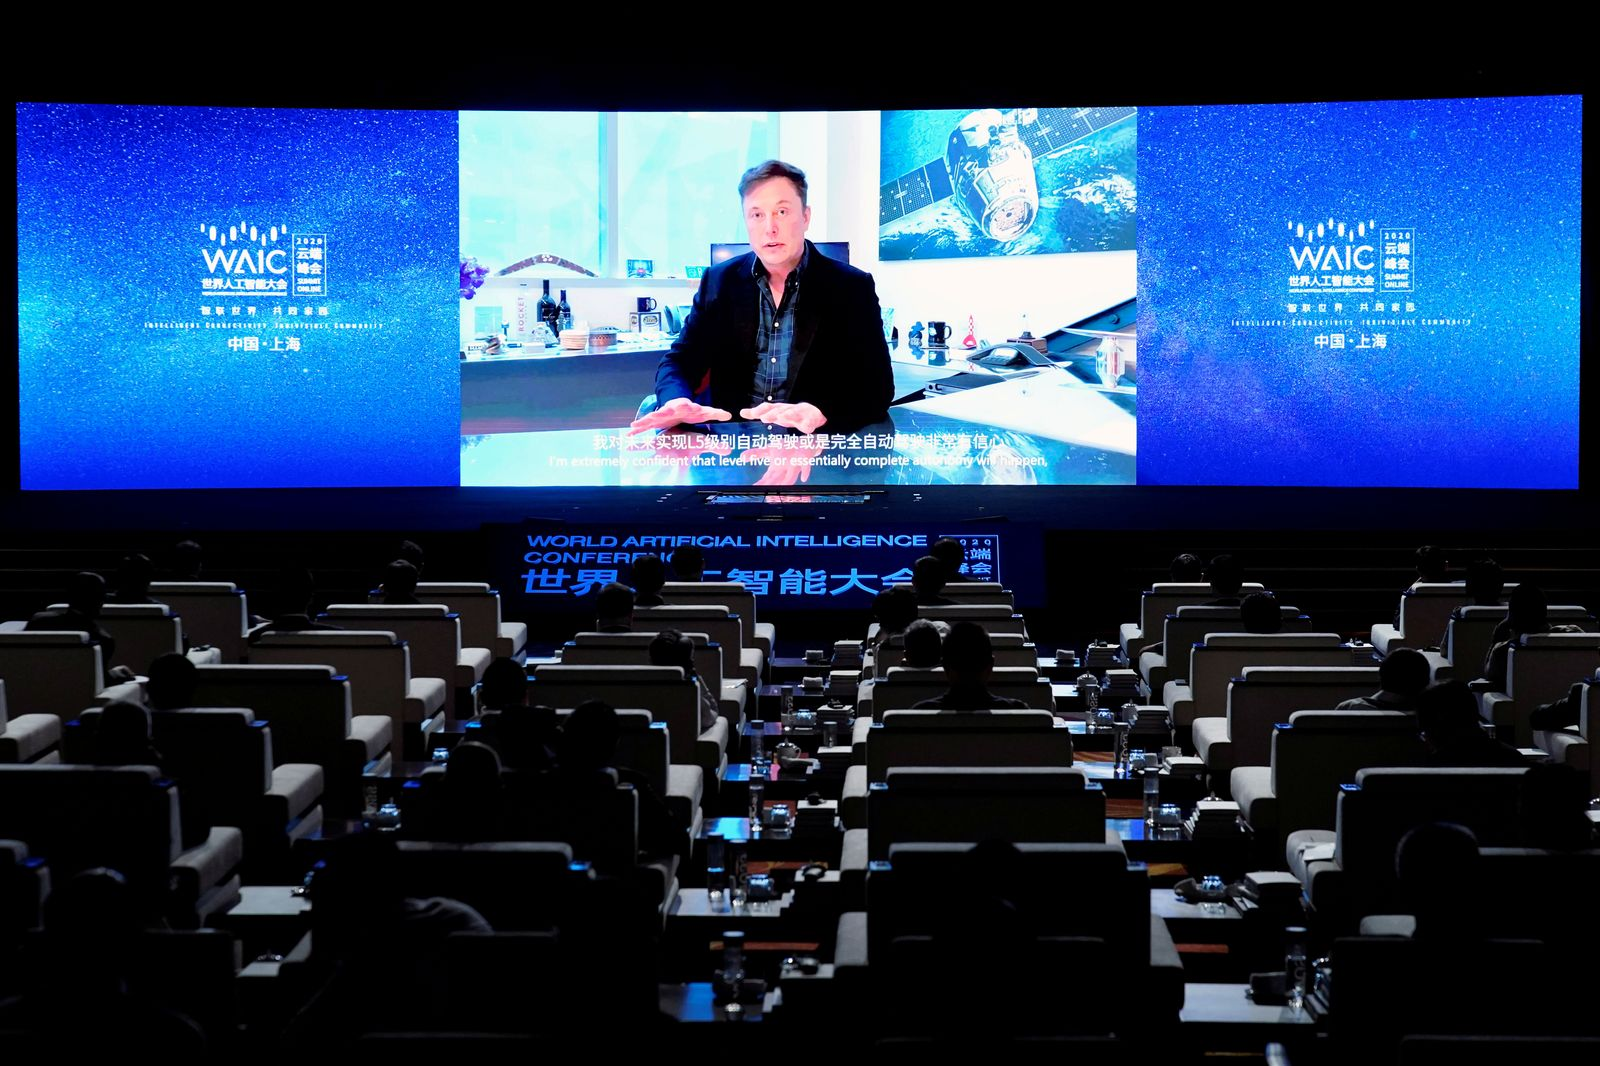 Tesla Inc CEO Elon Musk is seen on a screen during the opening ceremony of the WAIC in Shanghai